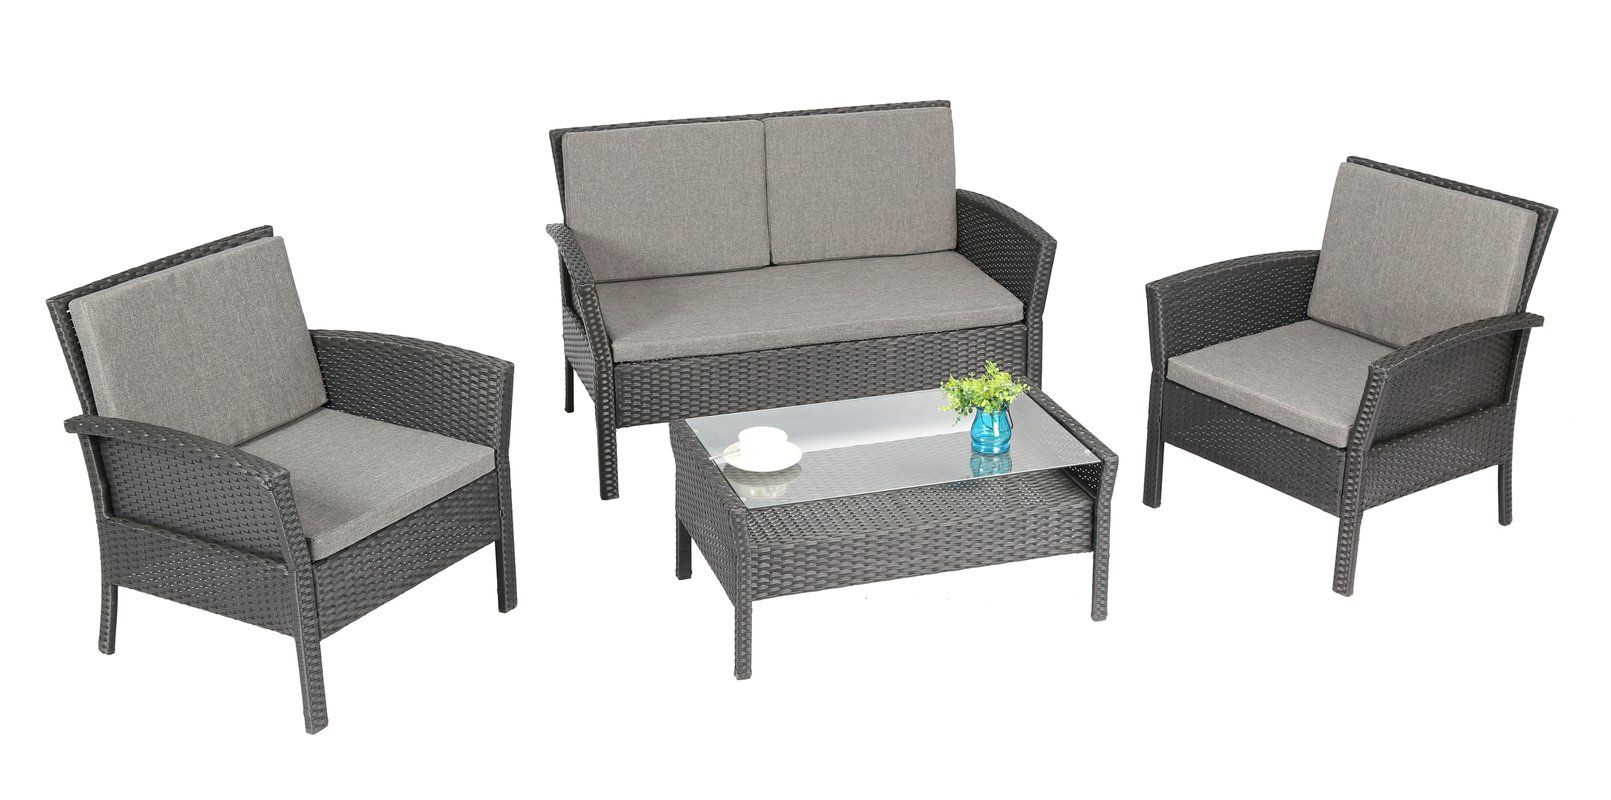 Spiaggia 4 Piece Sofa Set With Cushions Furniture Seating Groups Wicker Decor